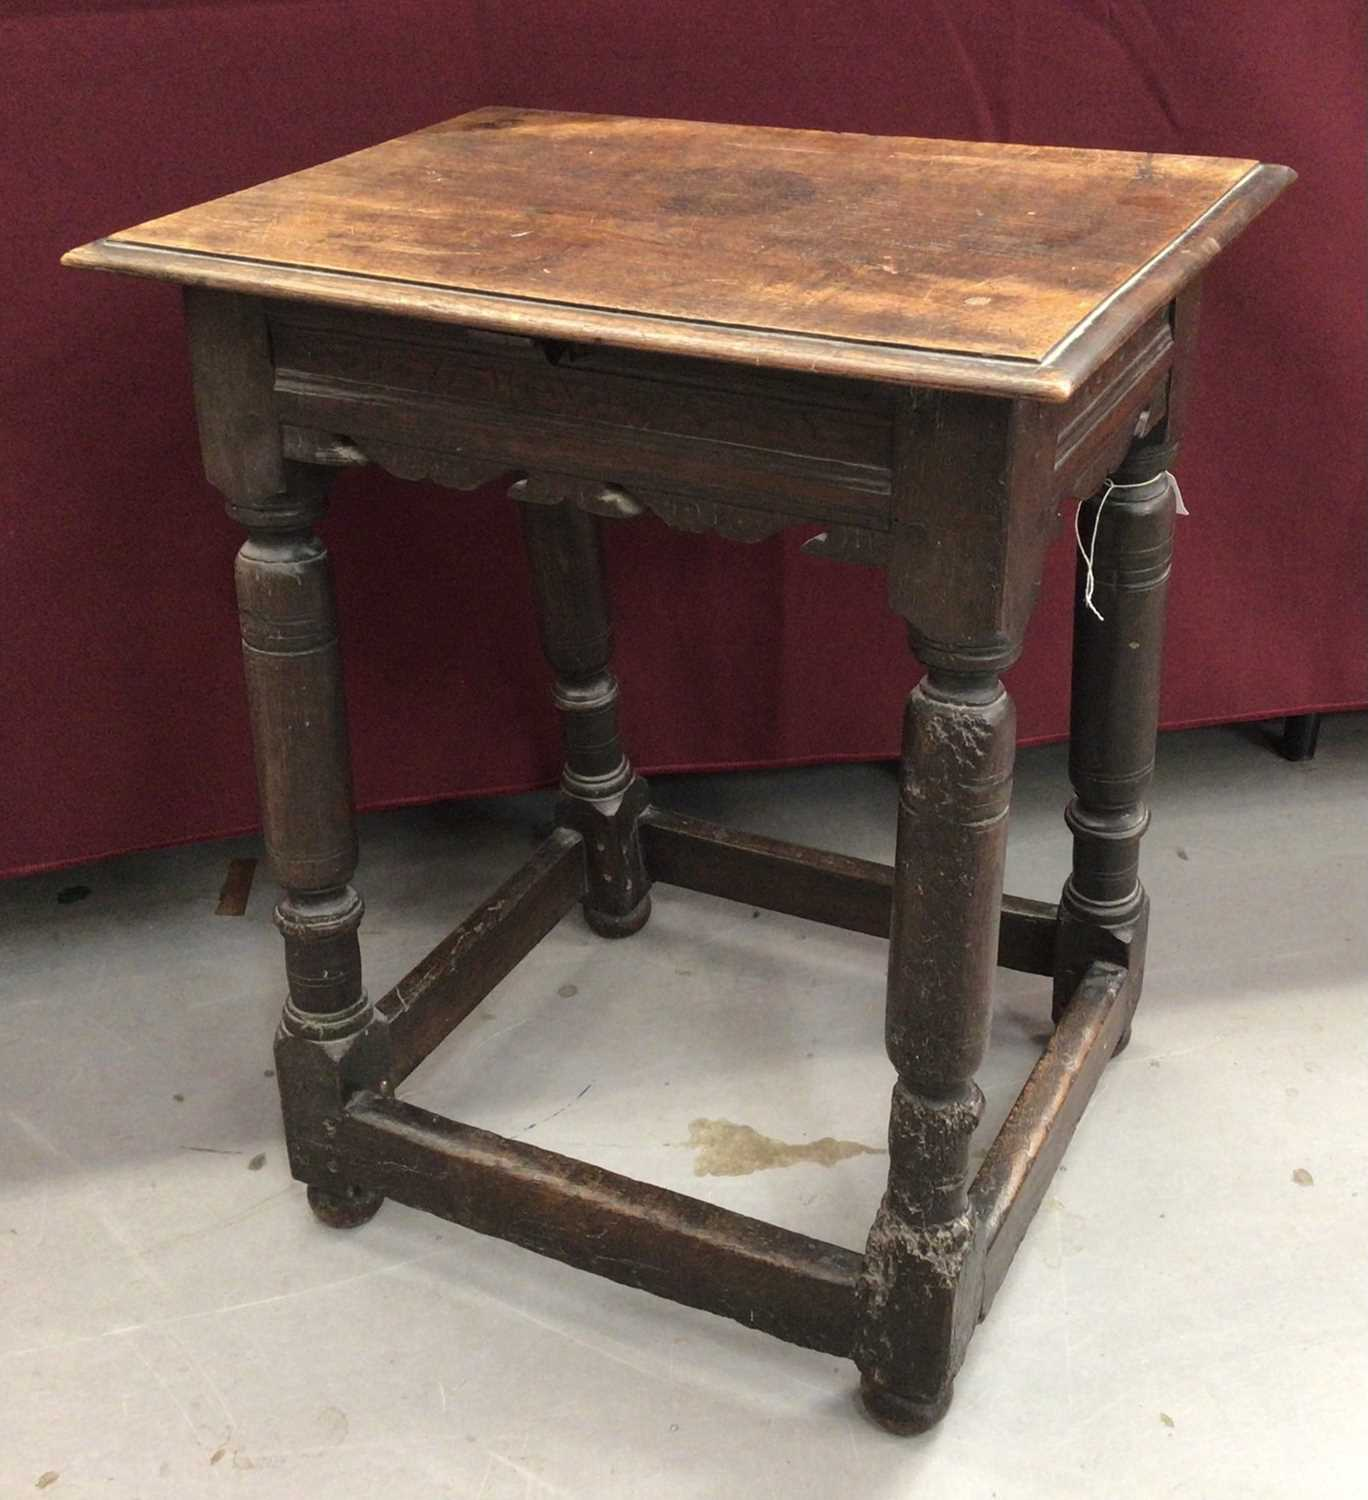 17th century and later oak joint stool - Image 2 of 5